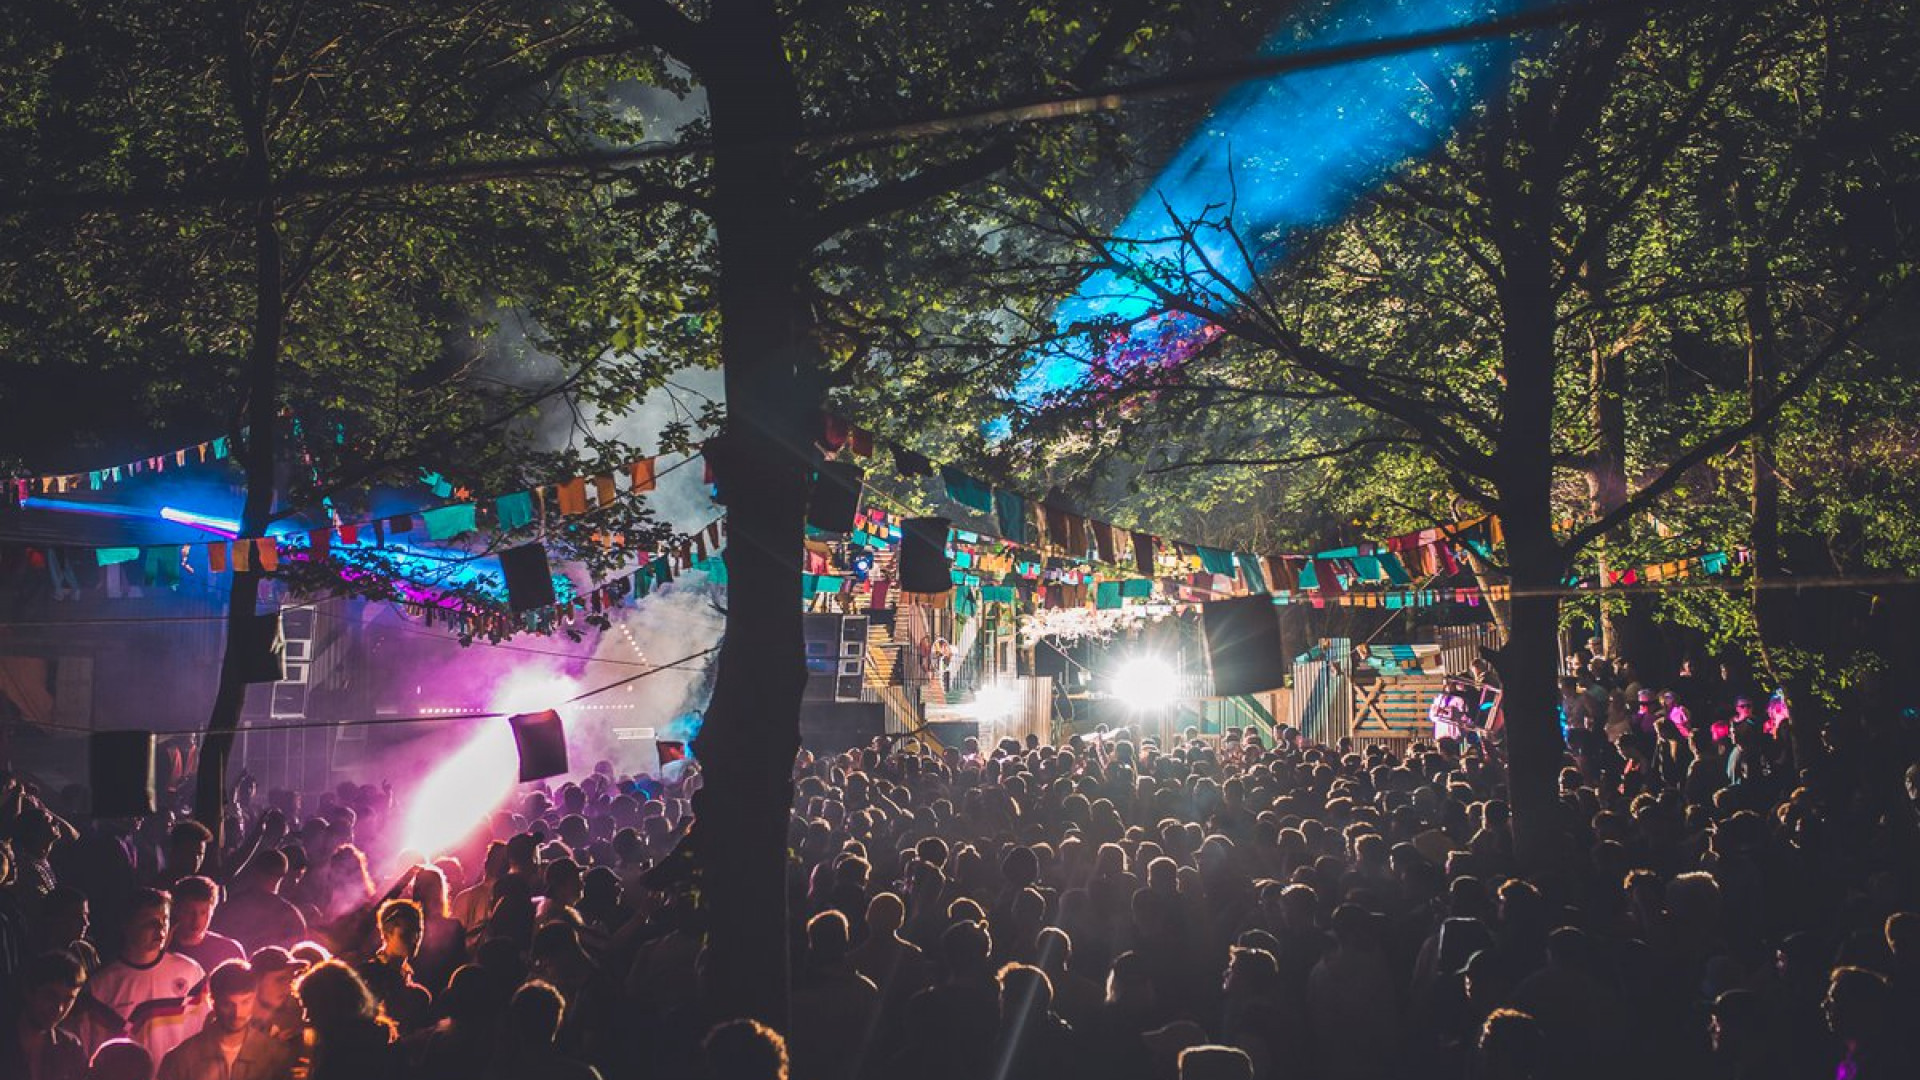 Farr Festival is set in a forest in Hertfordshire